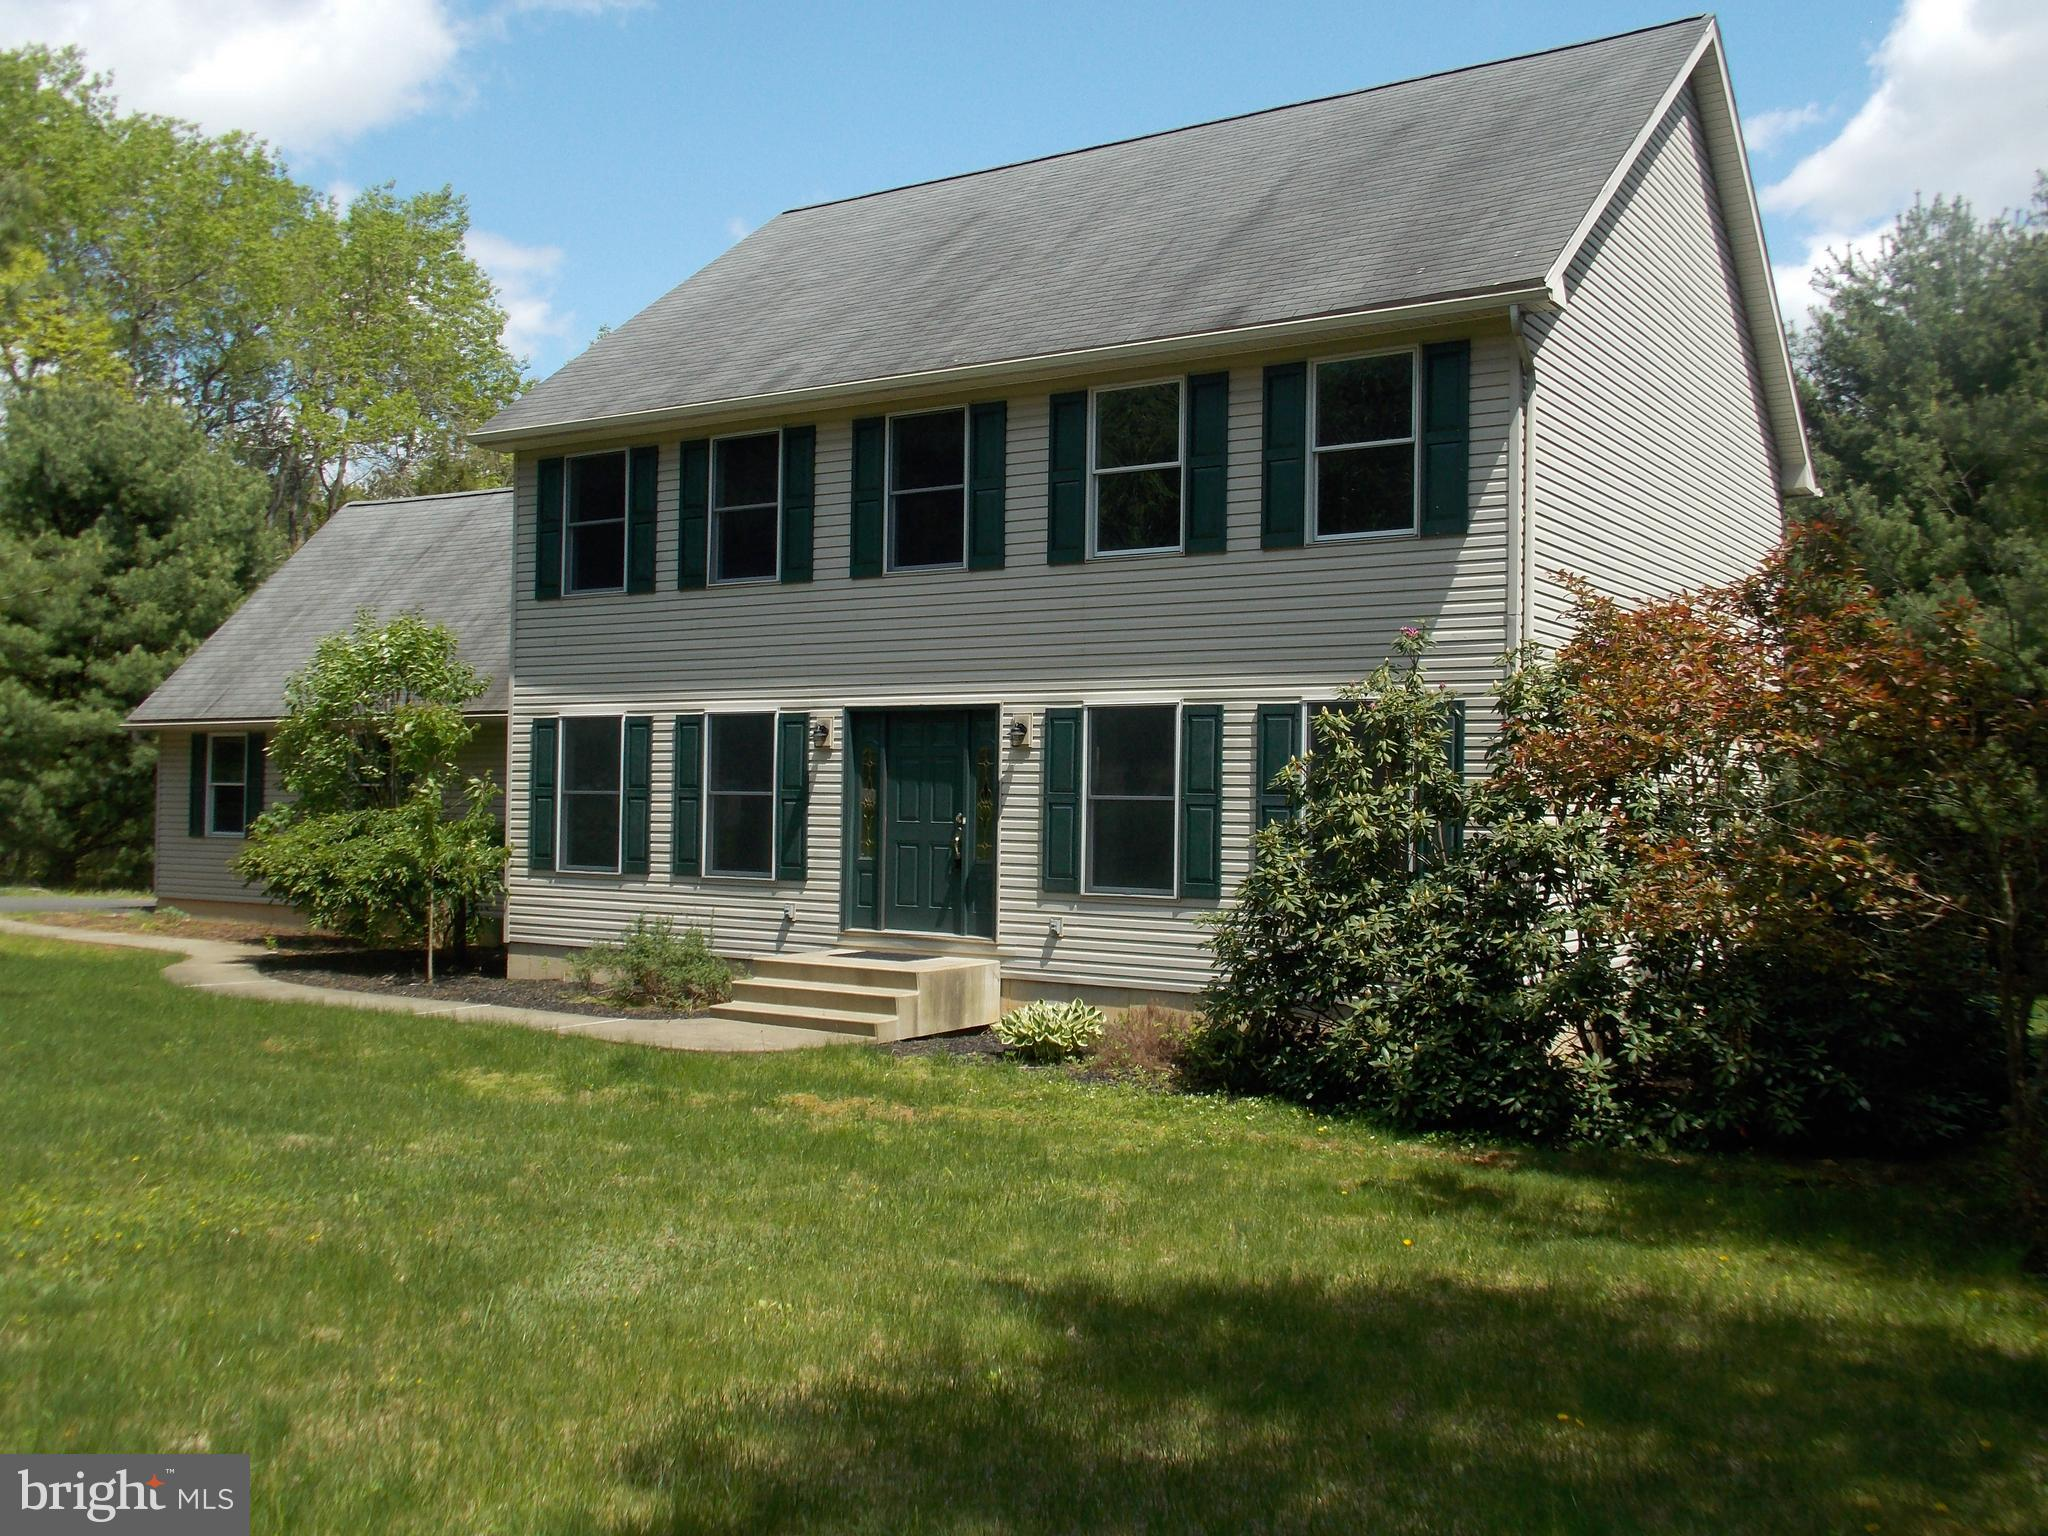 130 GOLF VIEW DRIVE, KUNKLETOWN, PA 18058